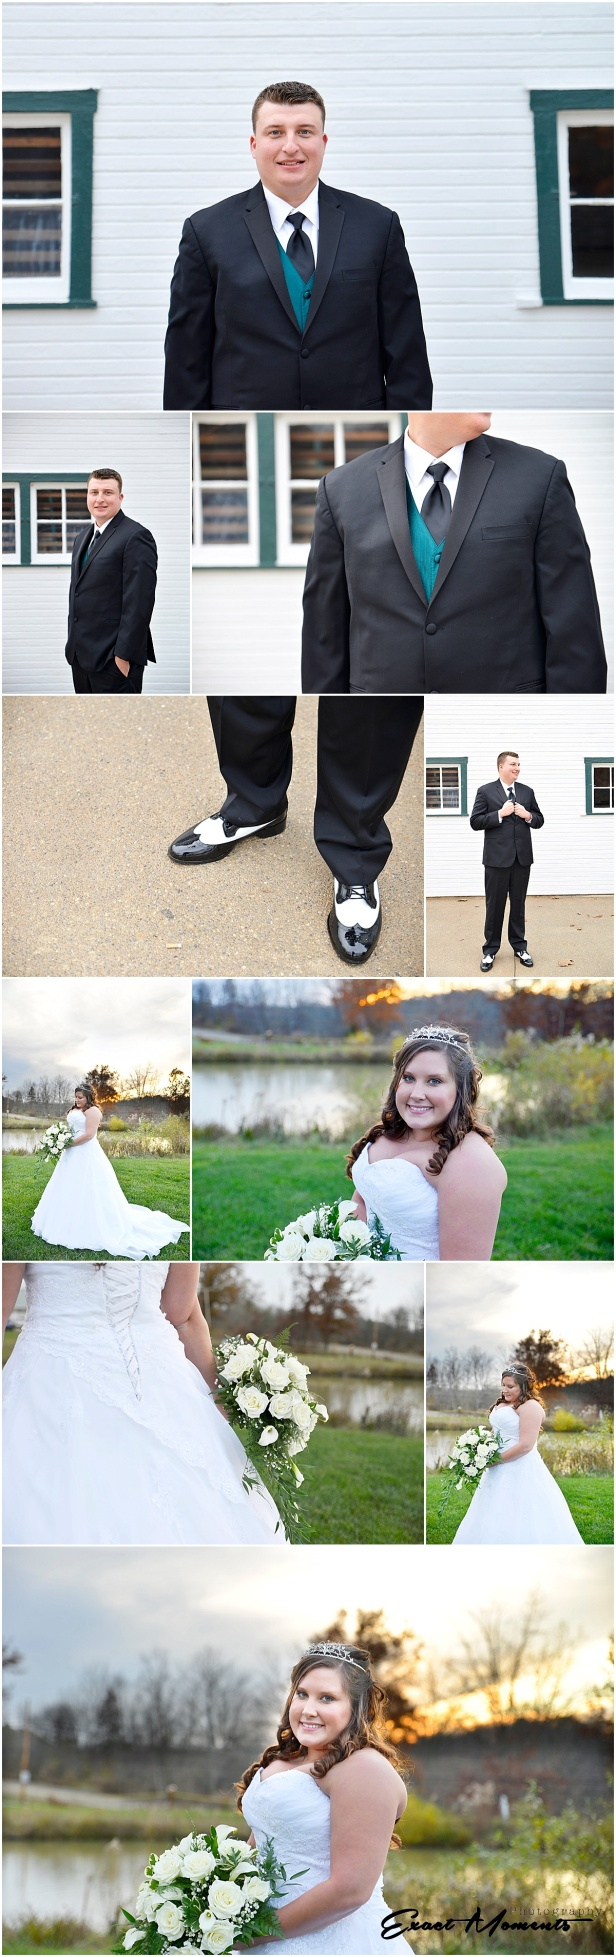 Wedding Photographers in Columbus Ohio